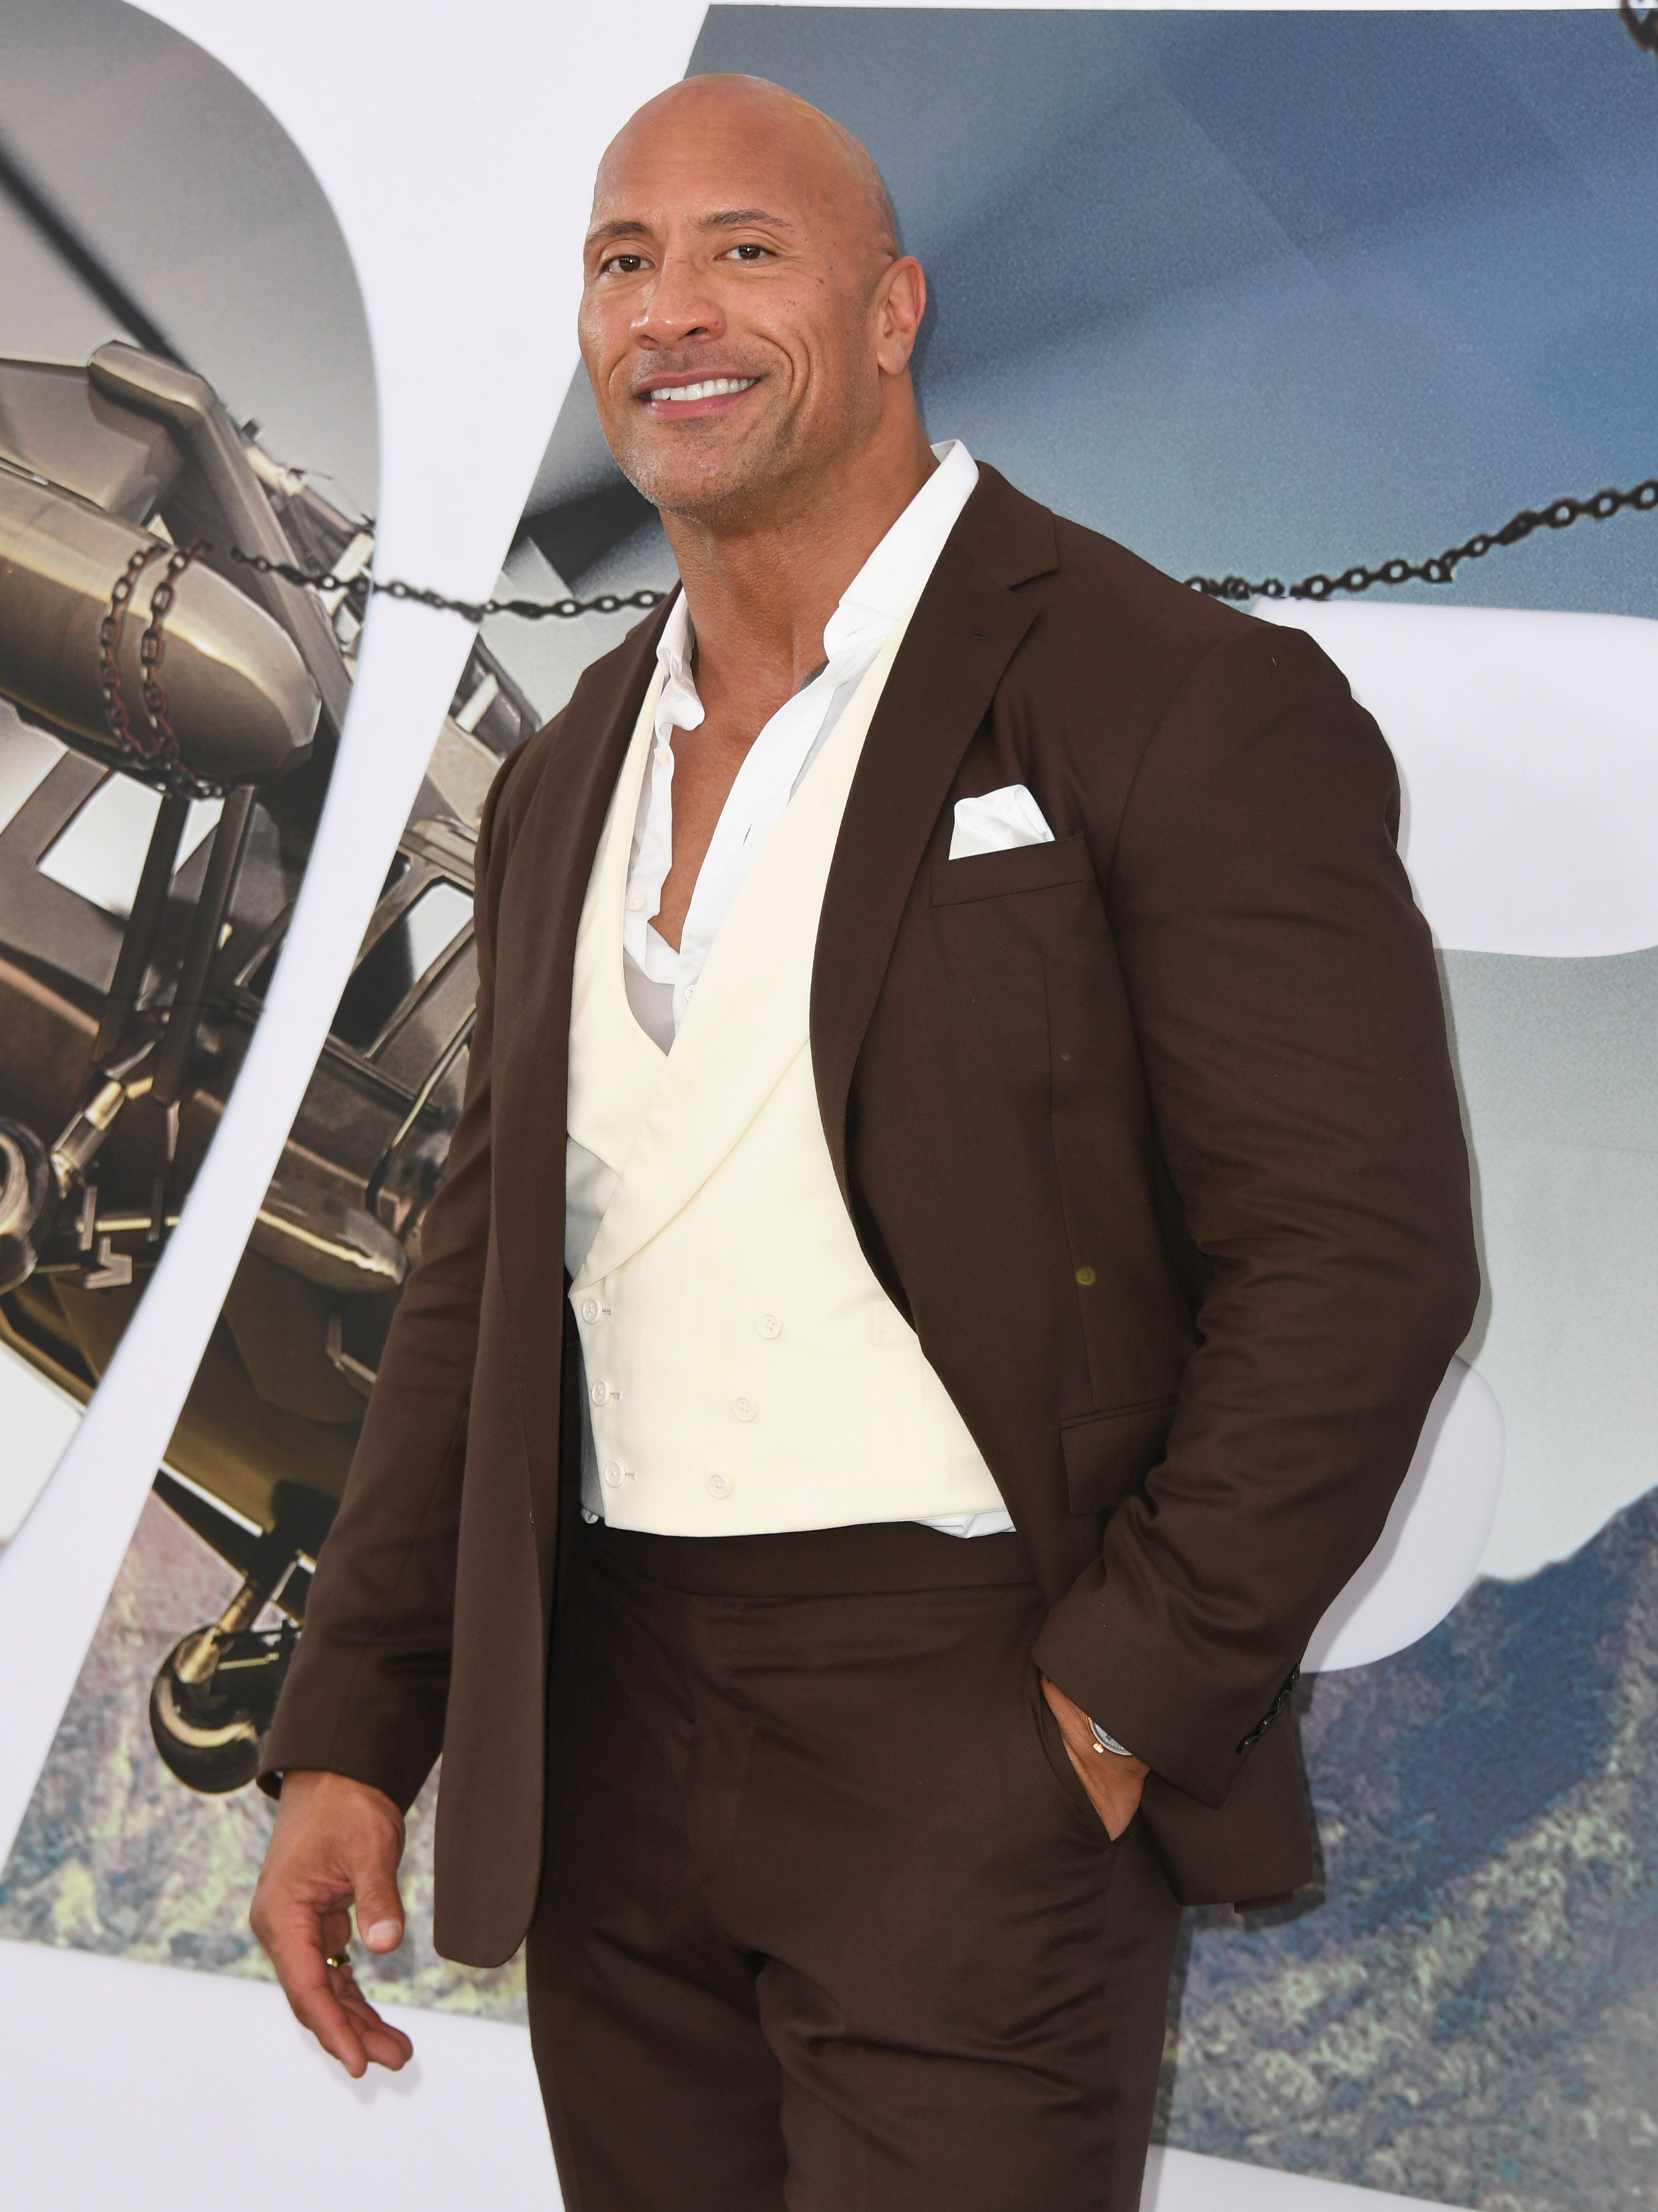 Dwayne Johnson at the premiere of 'Fast & Furious Presents: Hobbs & Shaw' at Dolby Theatre on July 13, 2019 in Hollywood, California | Photo: Getty Images